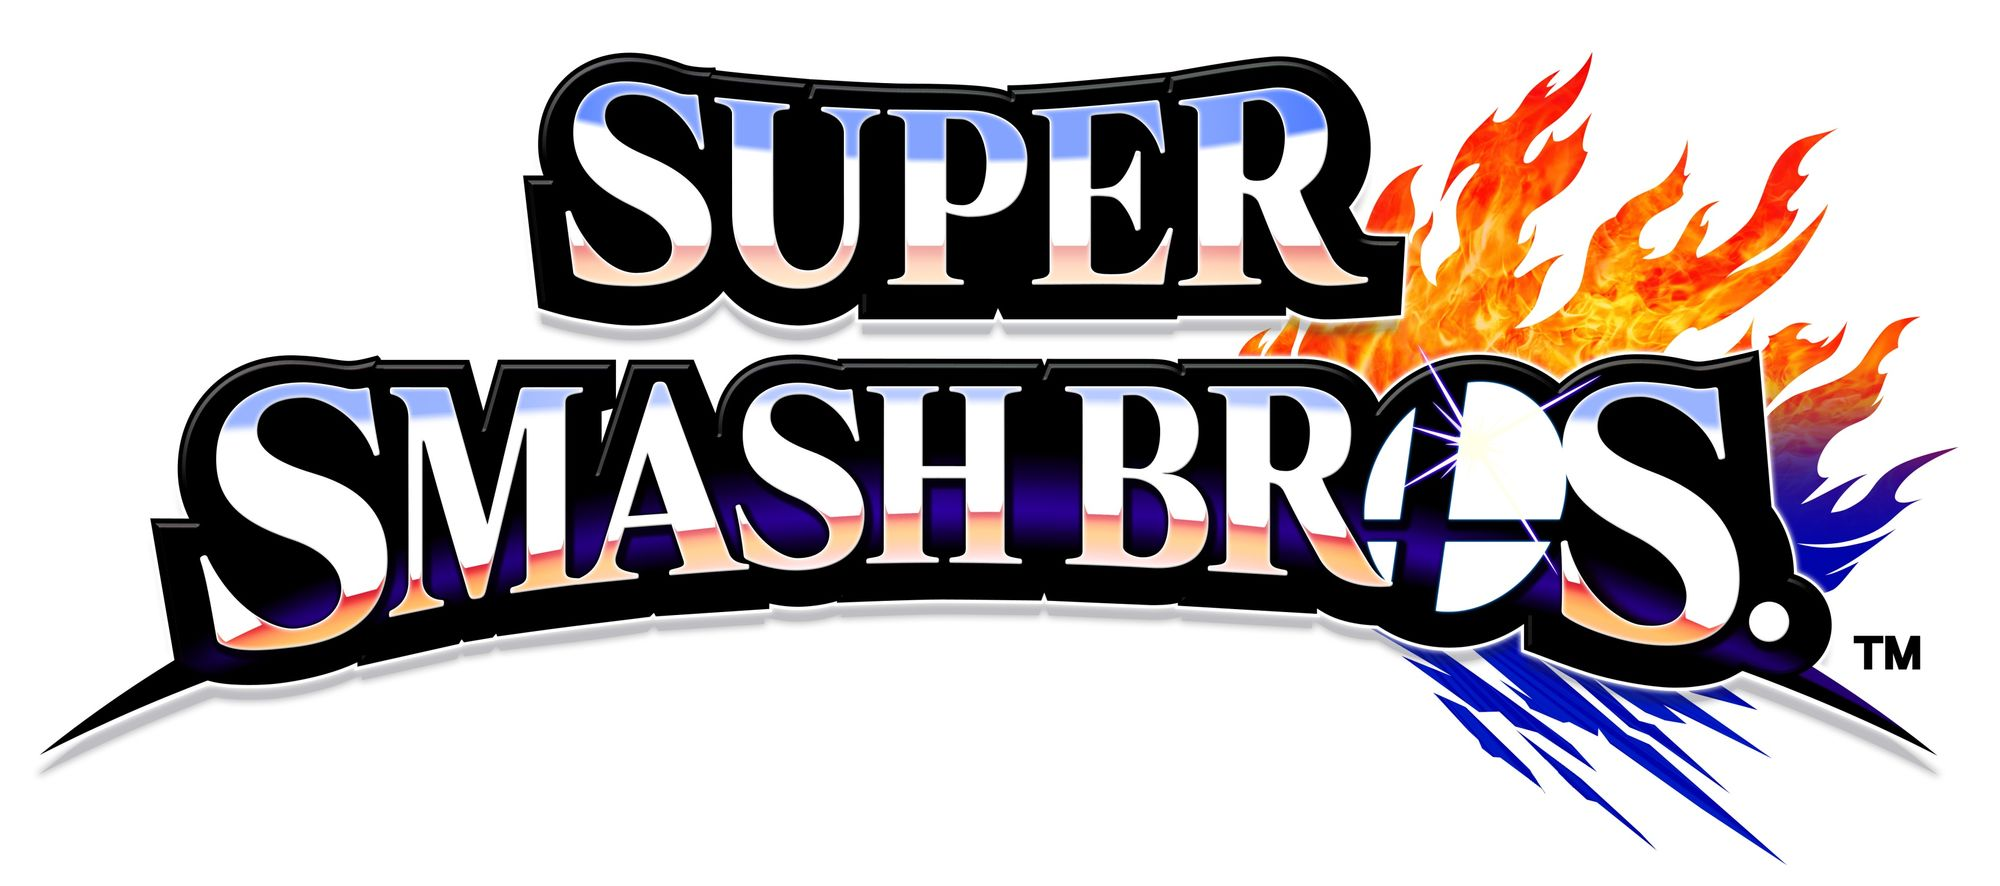 Super smash bros clipart svg royalty free library Category:Super Smash Bros. for Television Series   Super Smash ... svg royalty free library